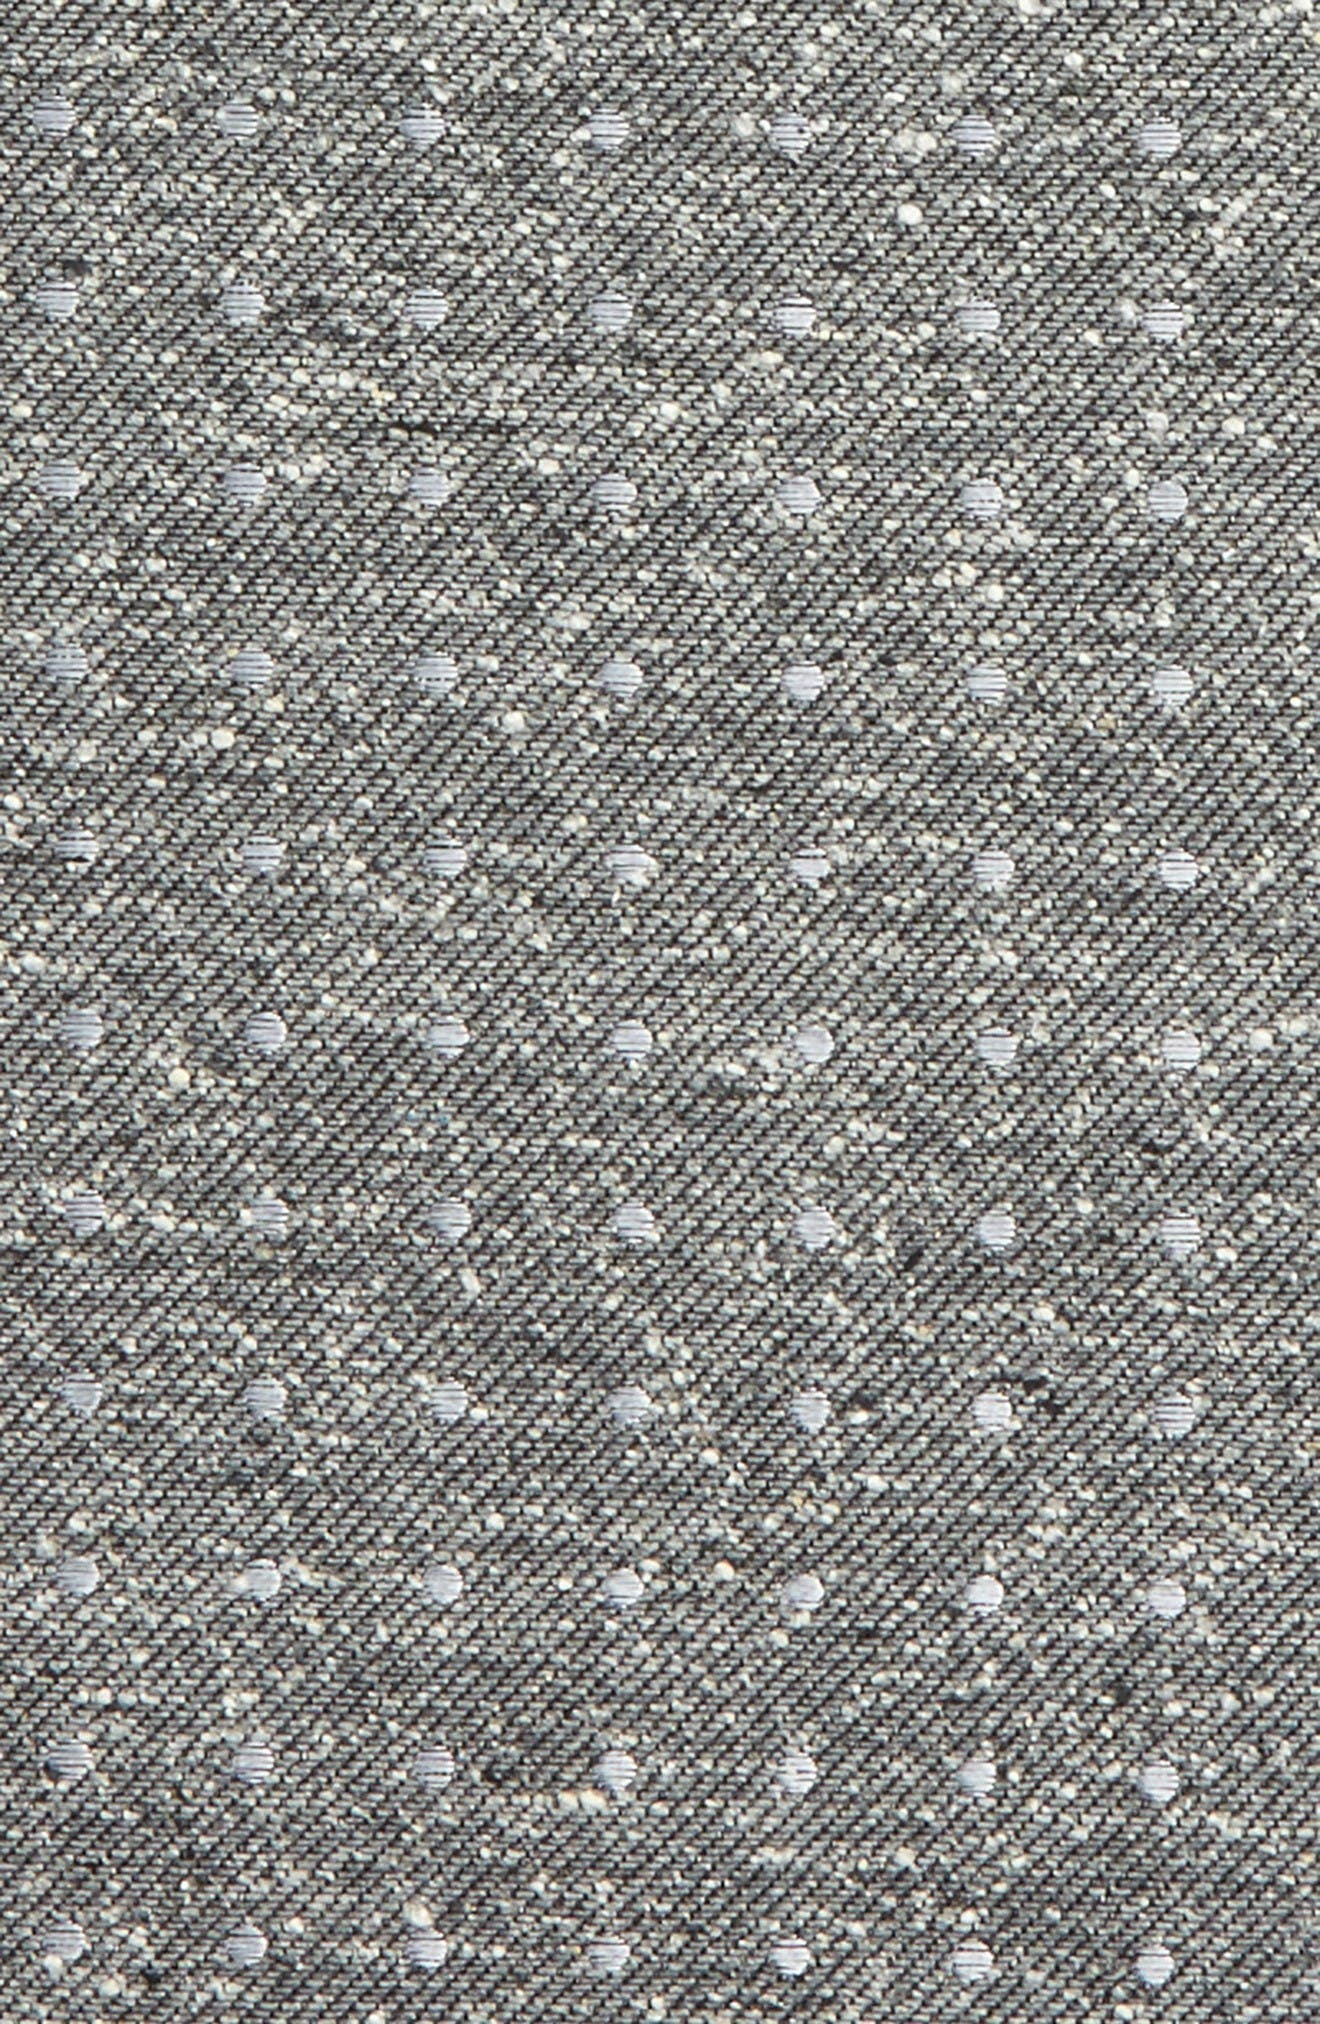 Alternate Image 2  - The Tie Bar Knotted Dots Silk Pocket Square